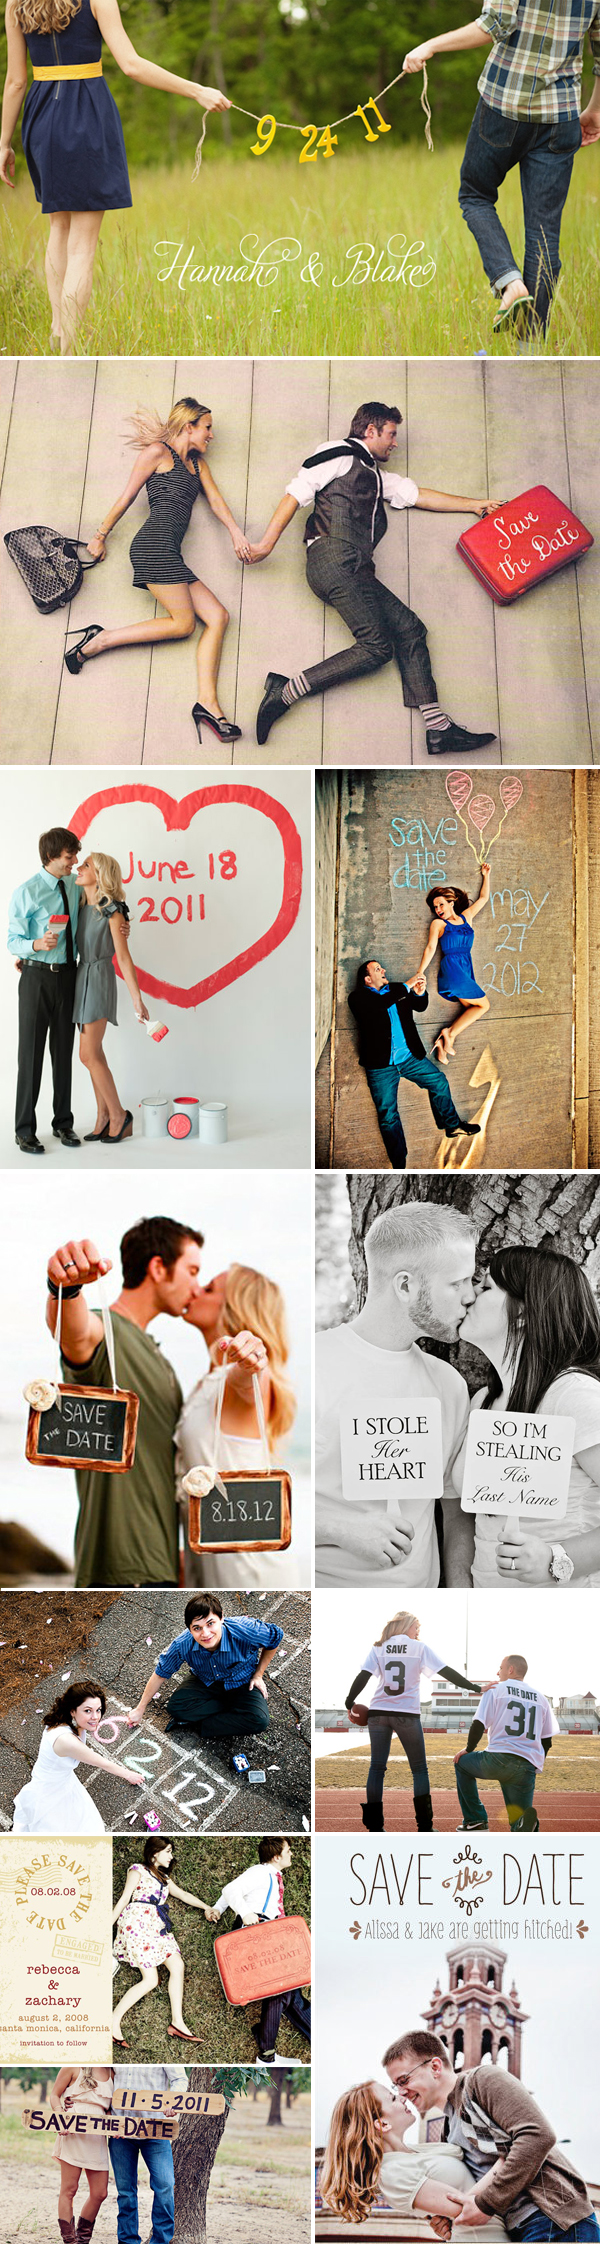 58 Creative Save-the-dates - Praise Wedding